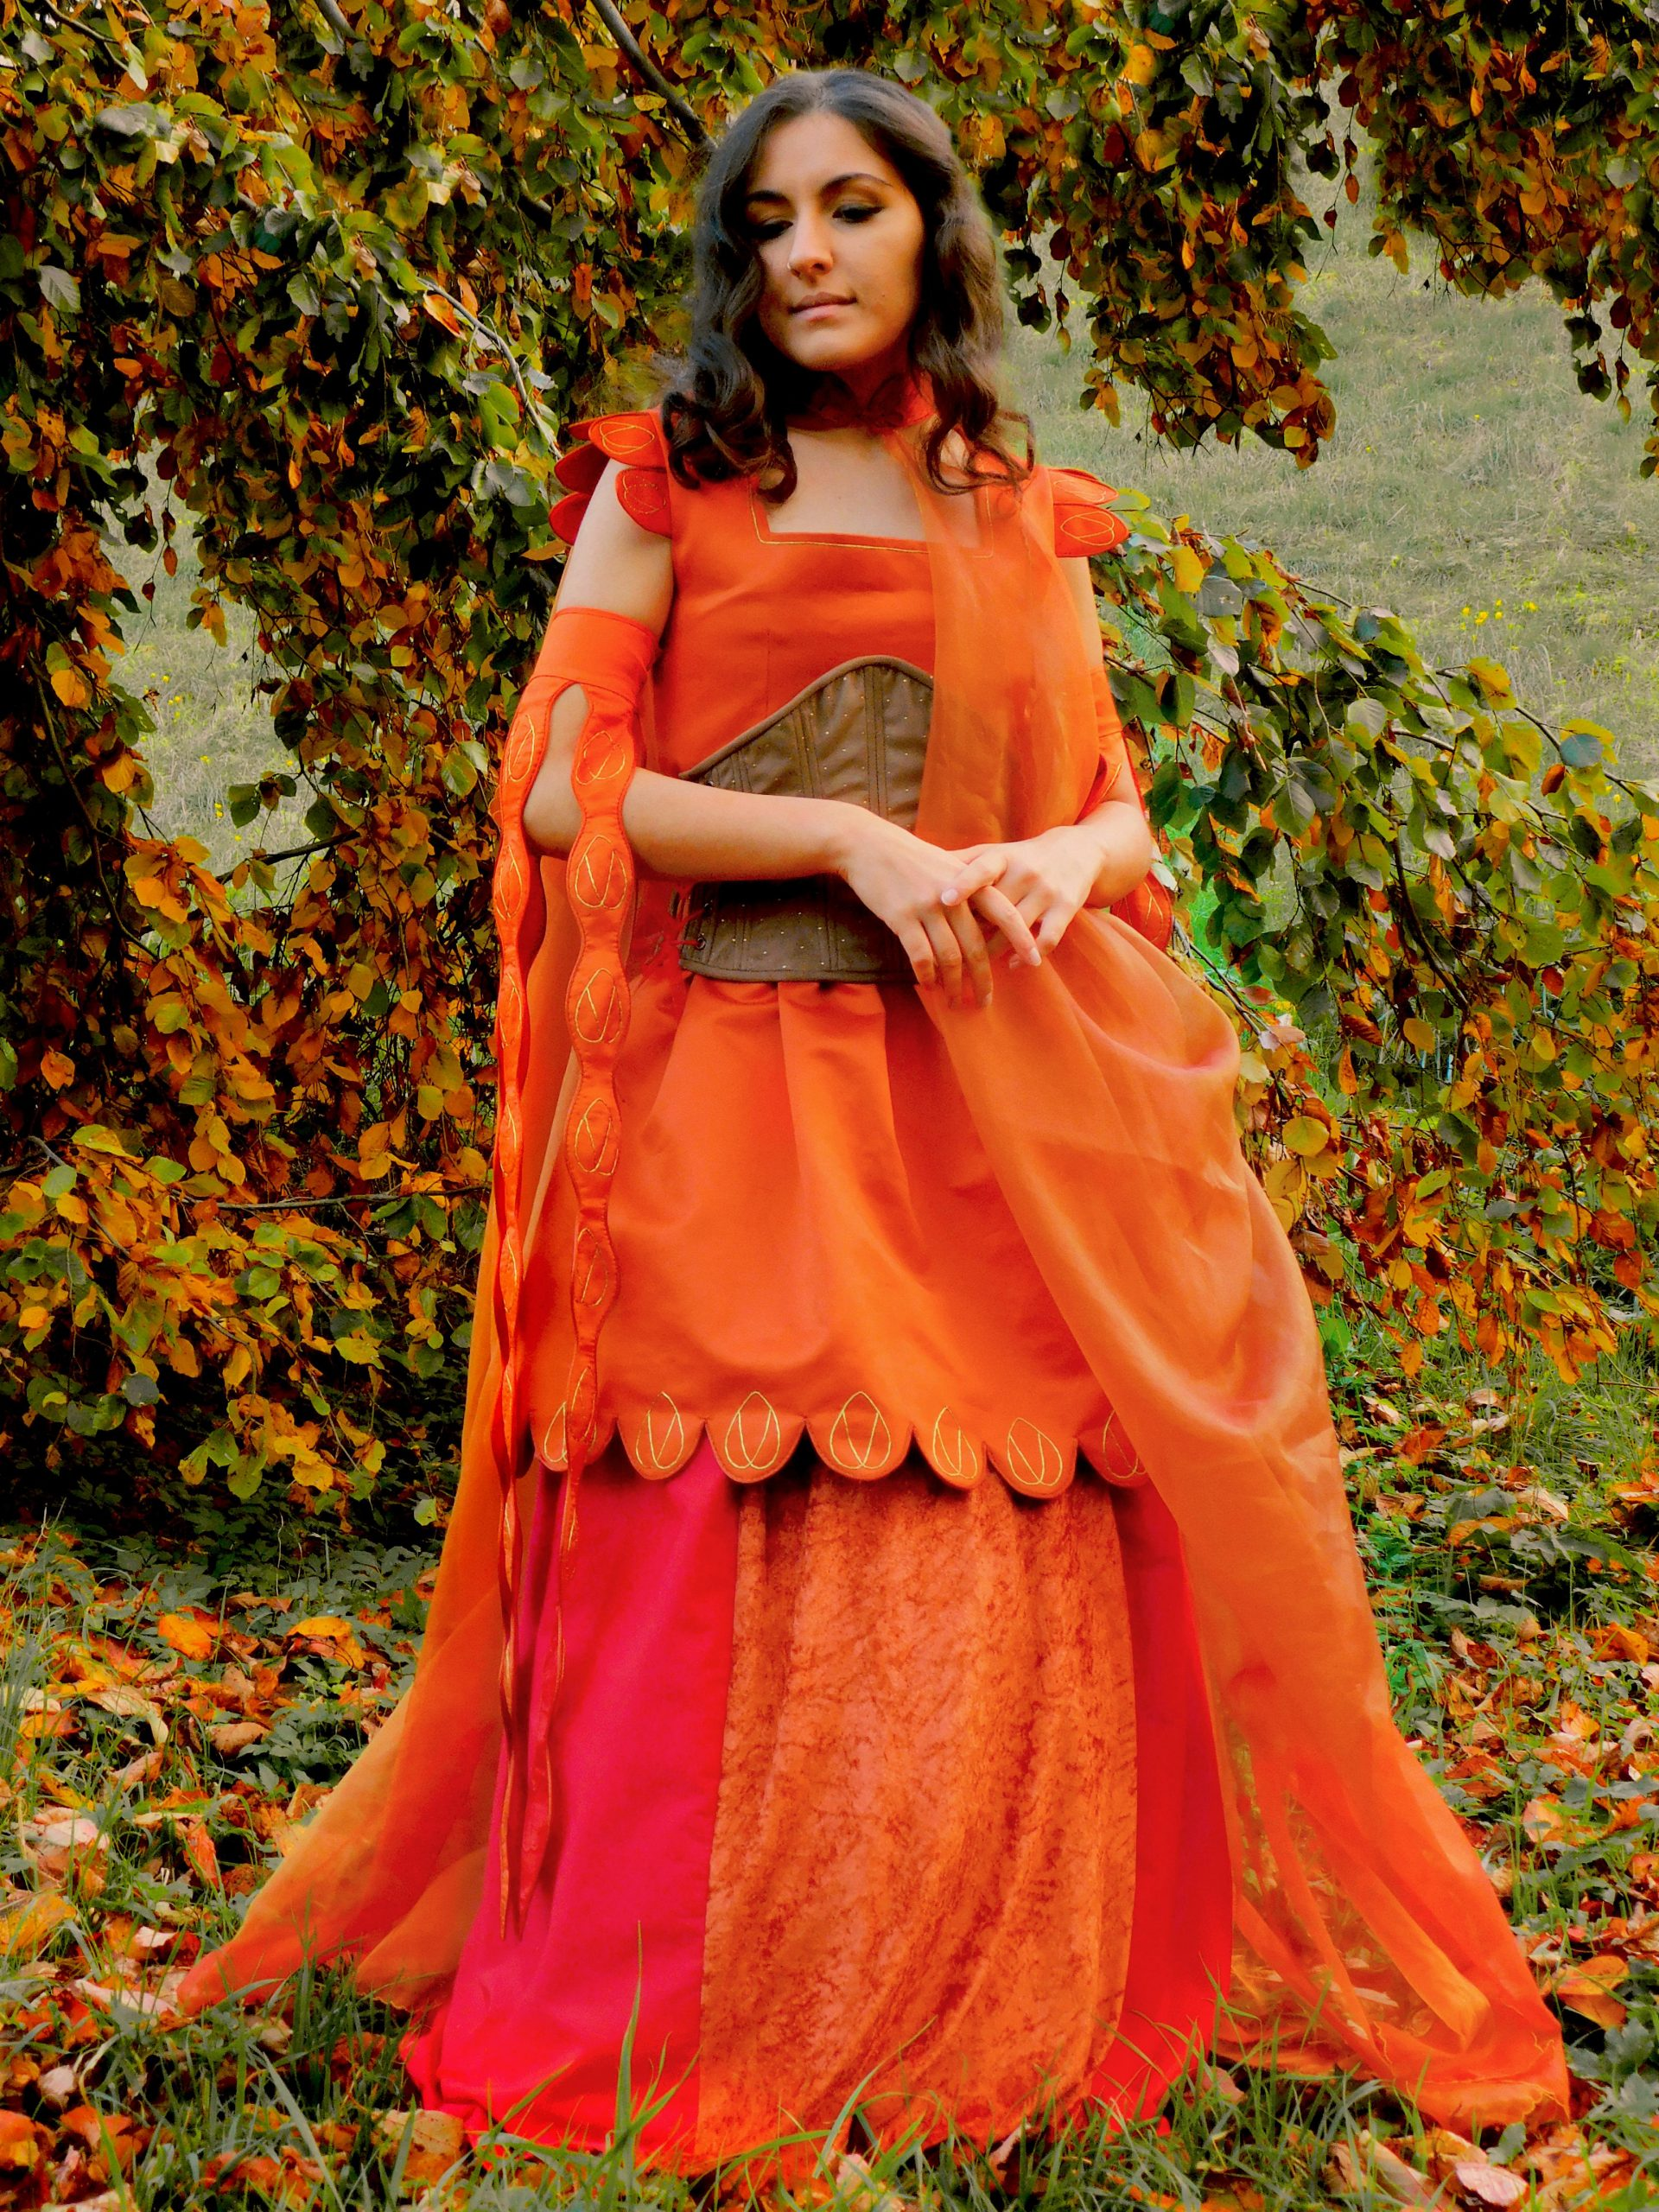 yhzgd8nlr7061 scaled - I made an Autumn inspired costume - hobbies, crafts